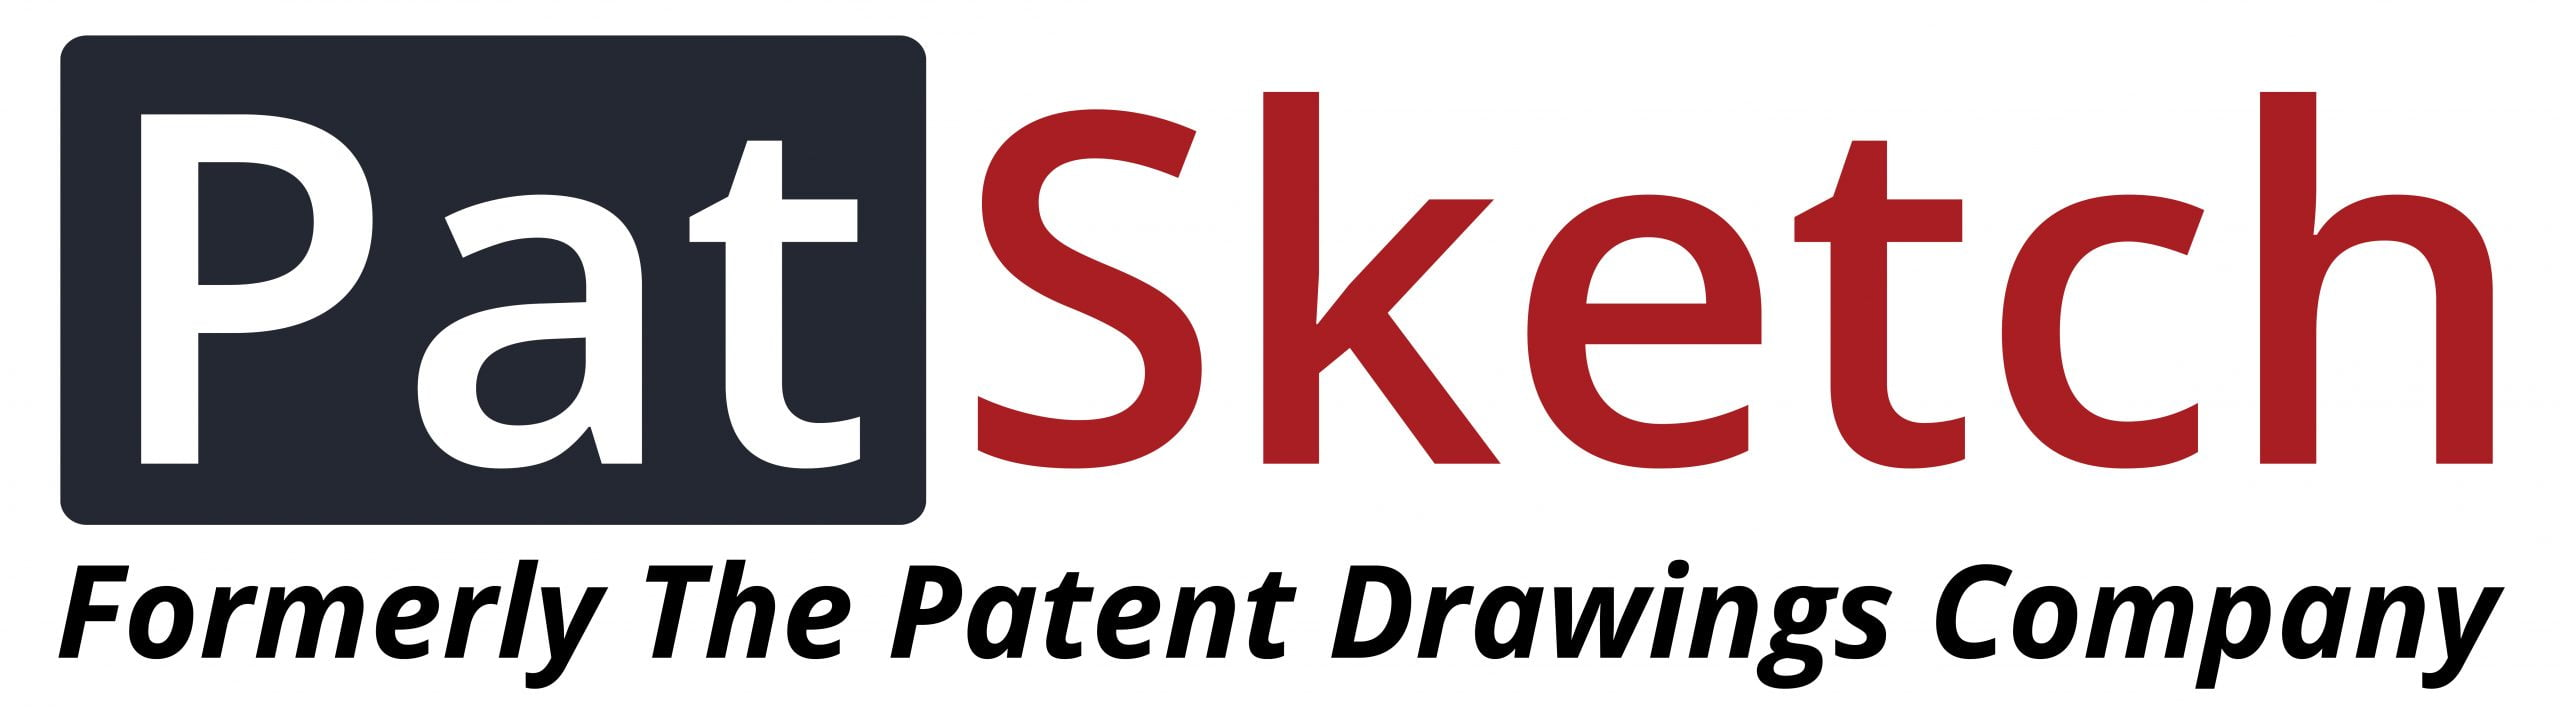 PatSketch Assists In Providing High-quality and Accurate Patent Illustration Services